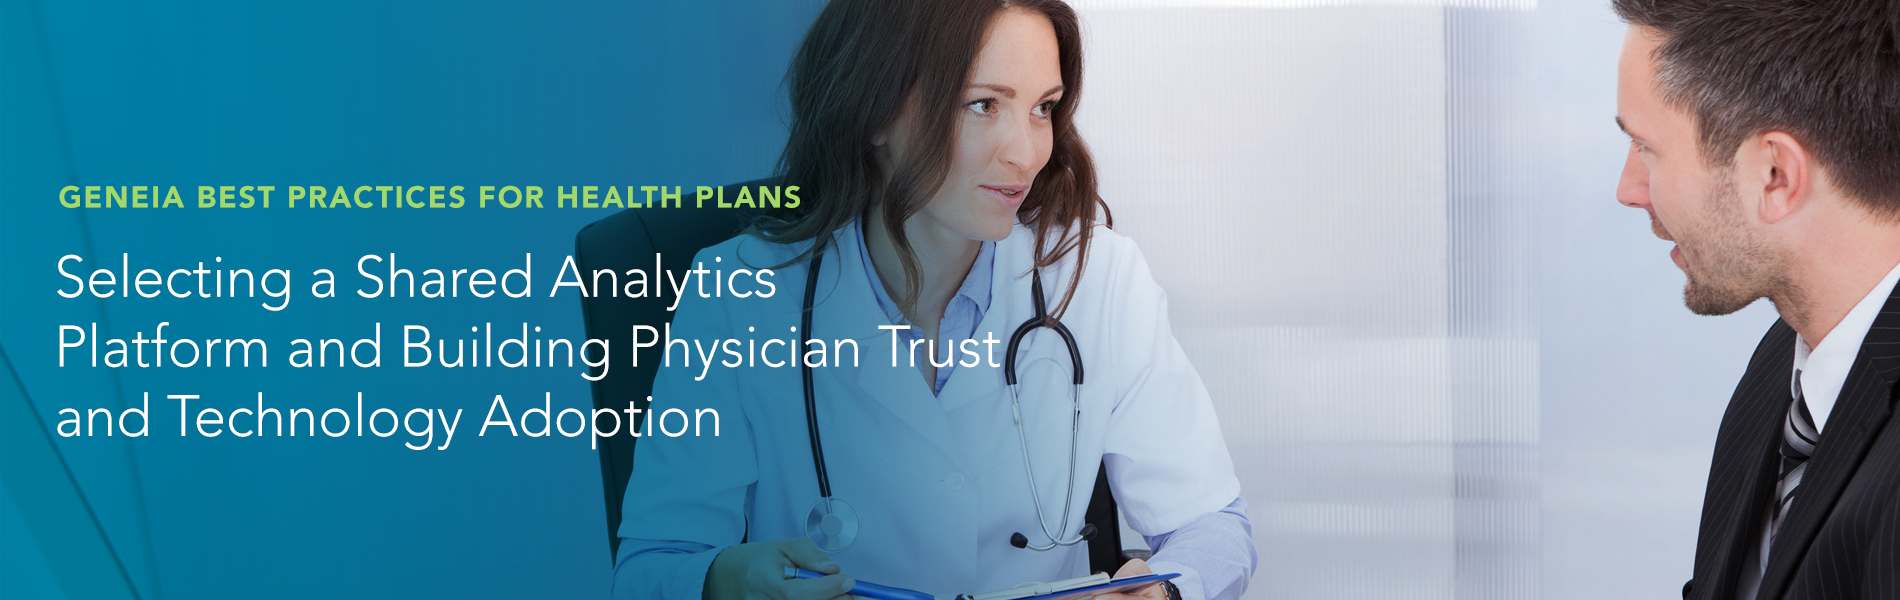 Health plans that are succeeding in value-based care have learned they need greater alignment with physicians. Download Geneia's best practices today.